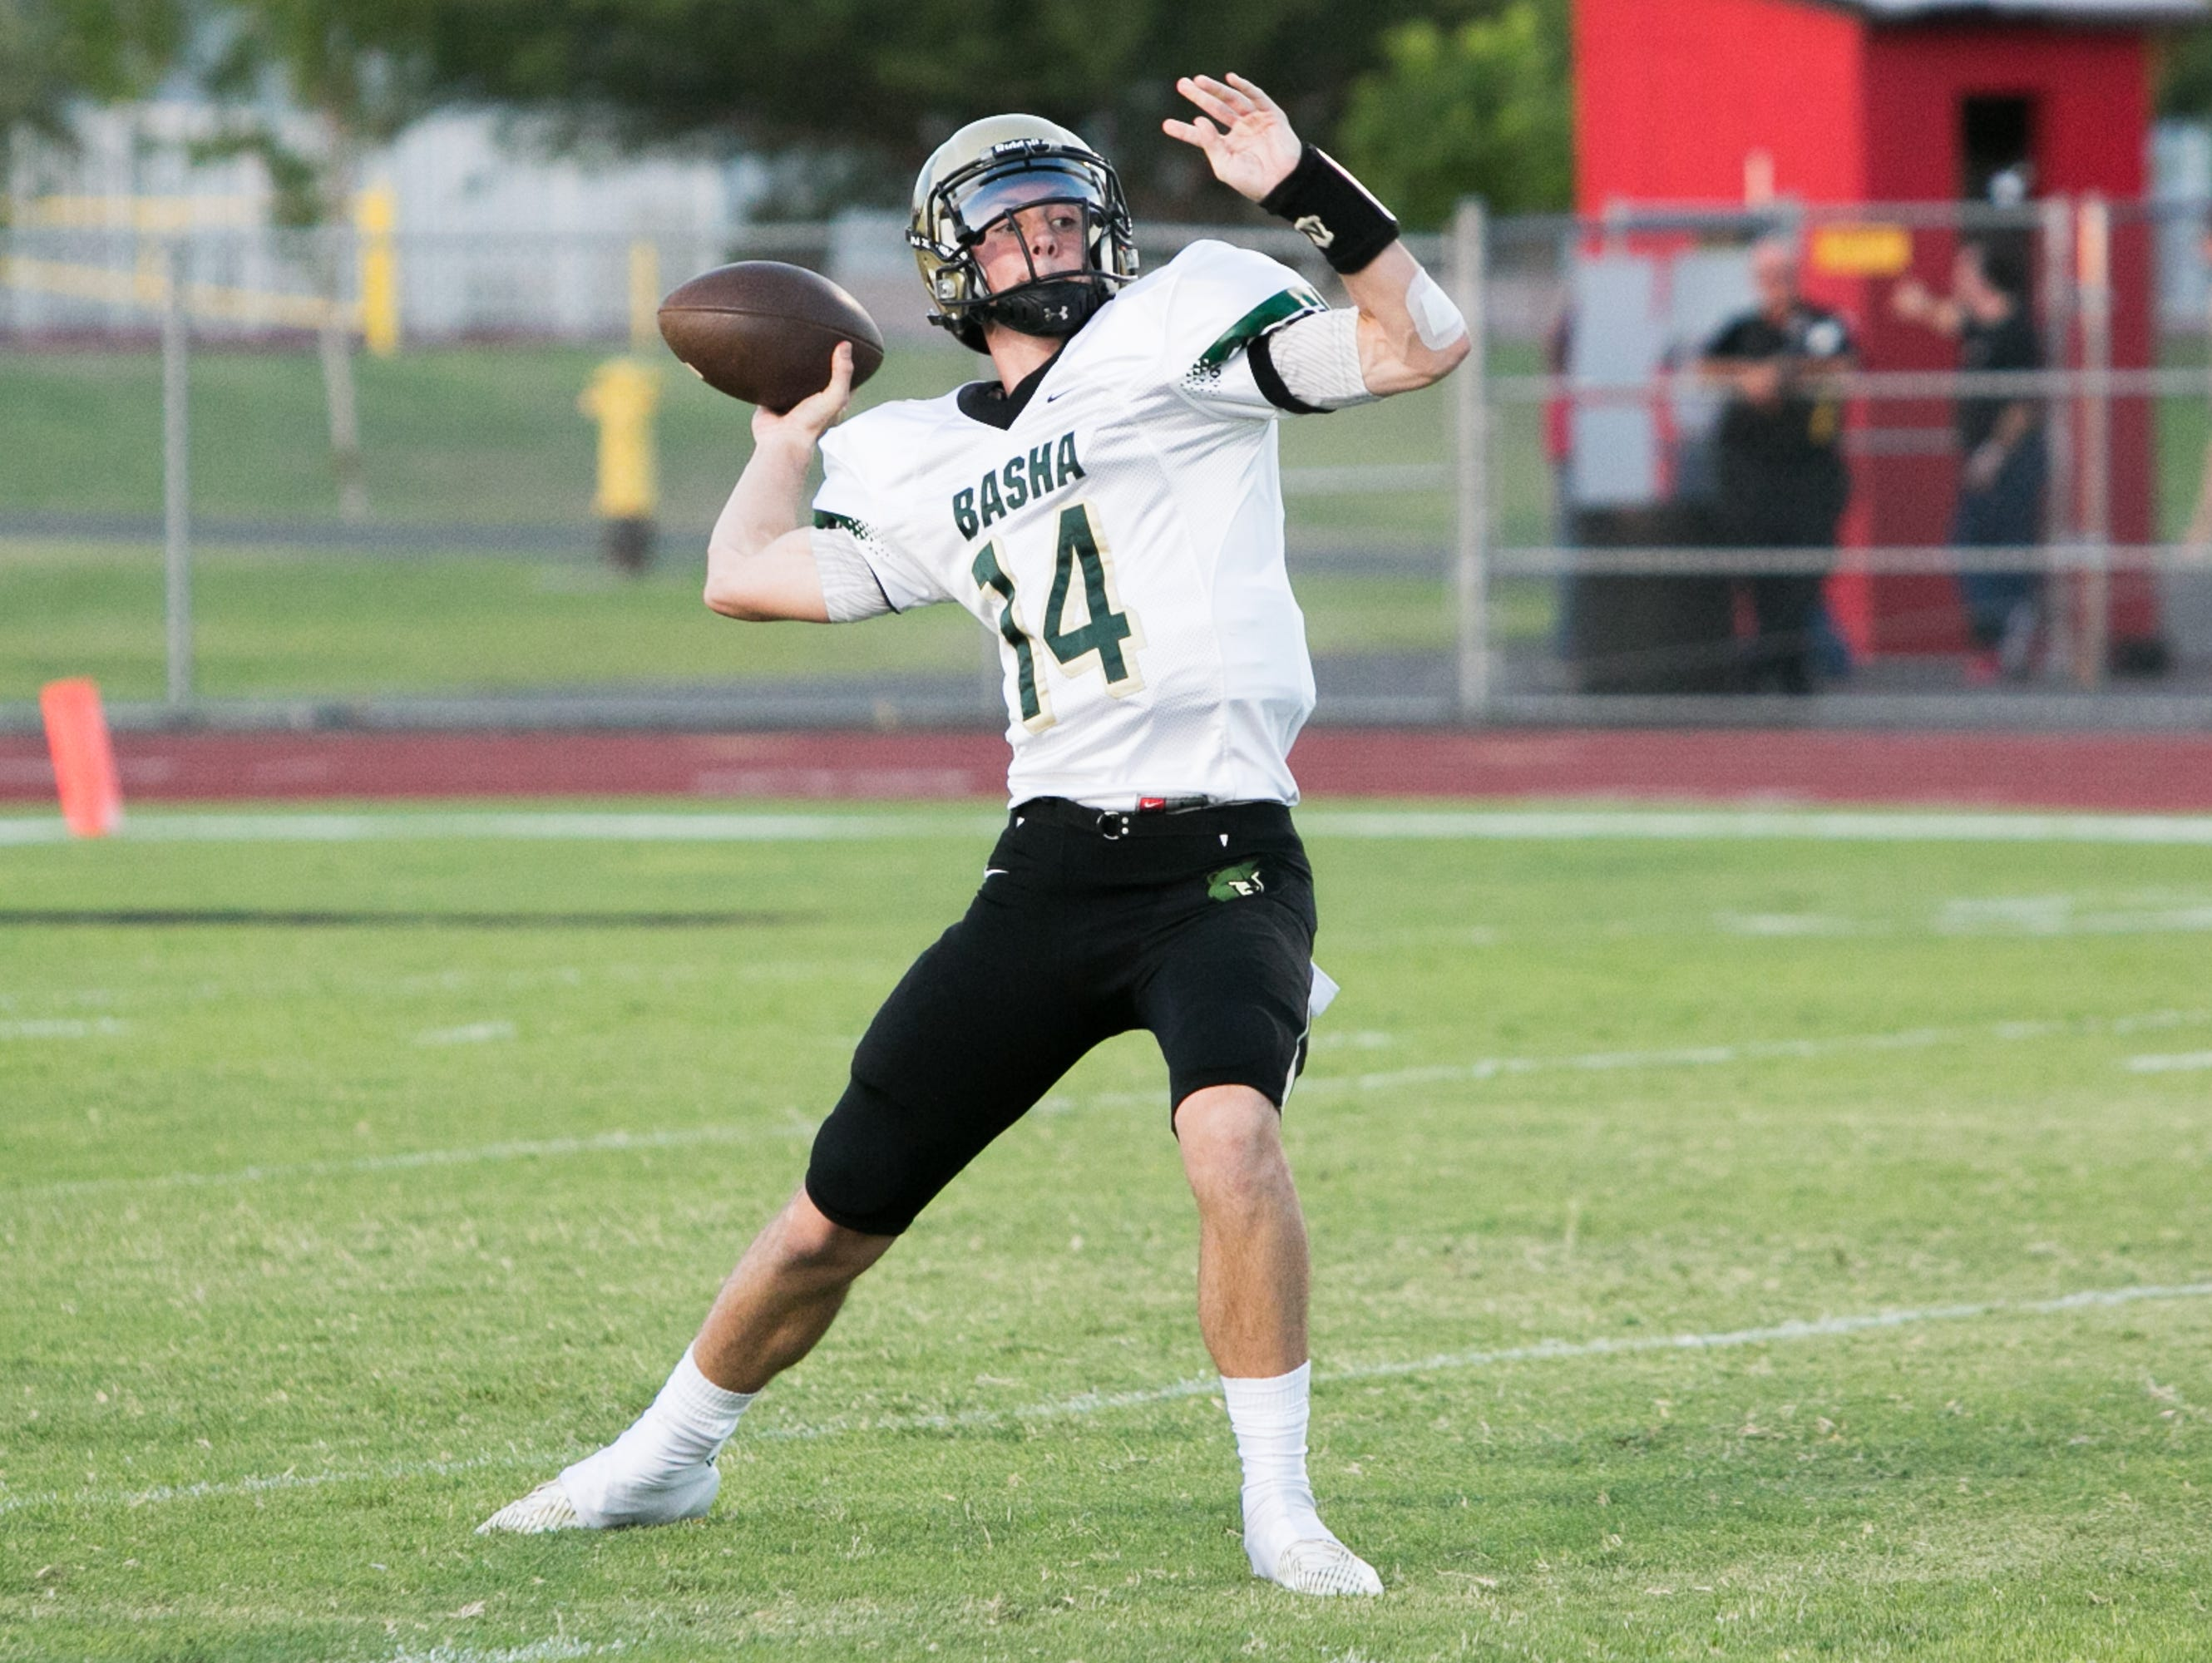 Fresh off an offer from Oregon, Basha junior quarterback Ryan Kelley will see if he can find the same success last year when he led the Bears to victory in his big break-out moment